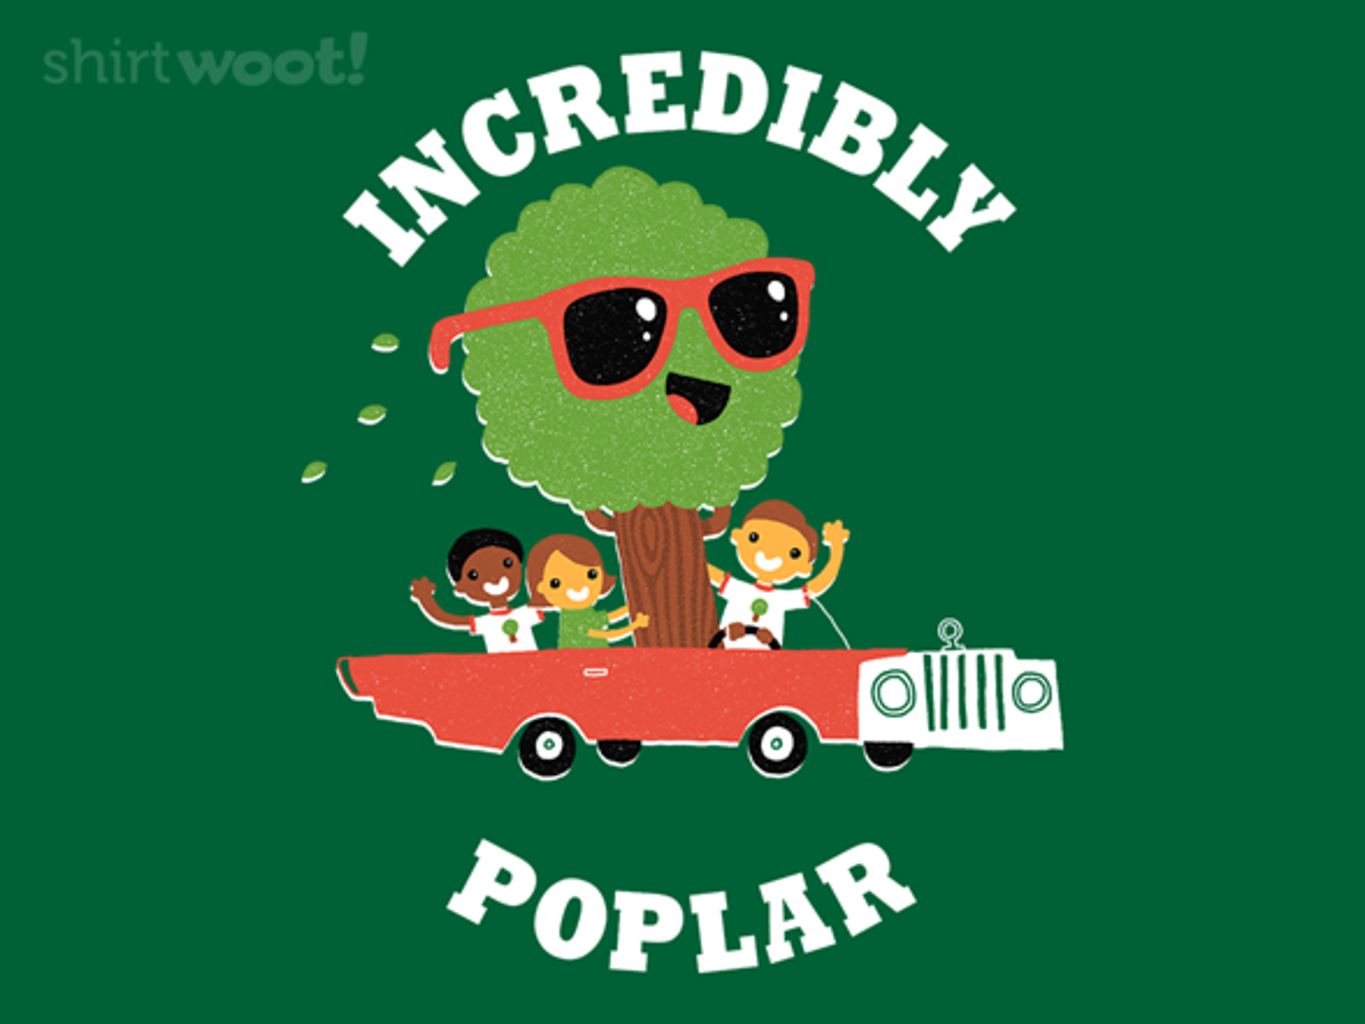 Woot!: Incredibly Poplar - $15.00 + Free shipping